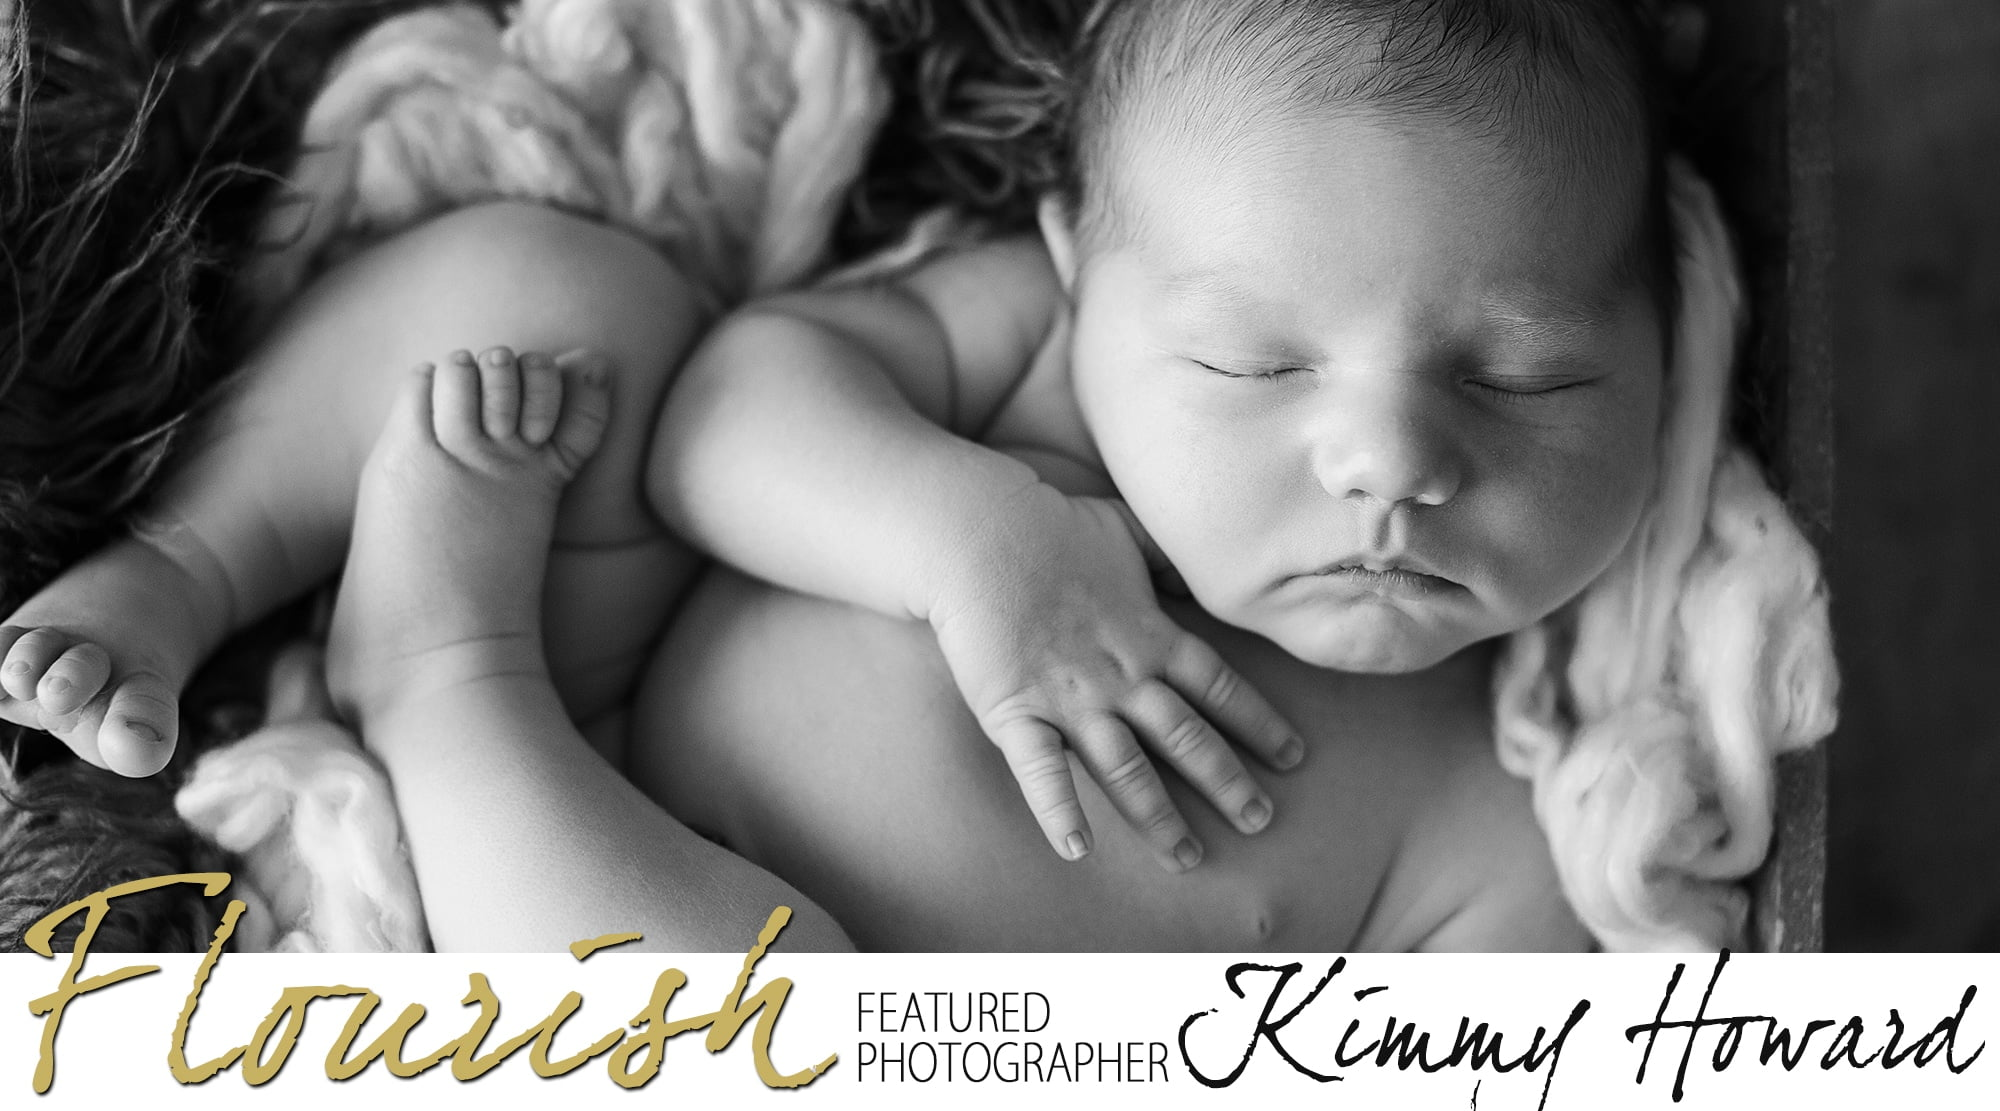 Flourish Featured Photographer Kimmy Howard